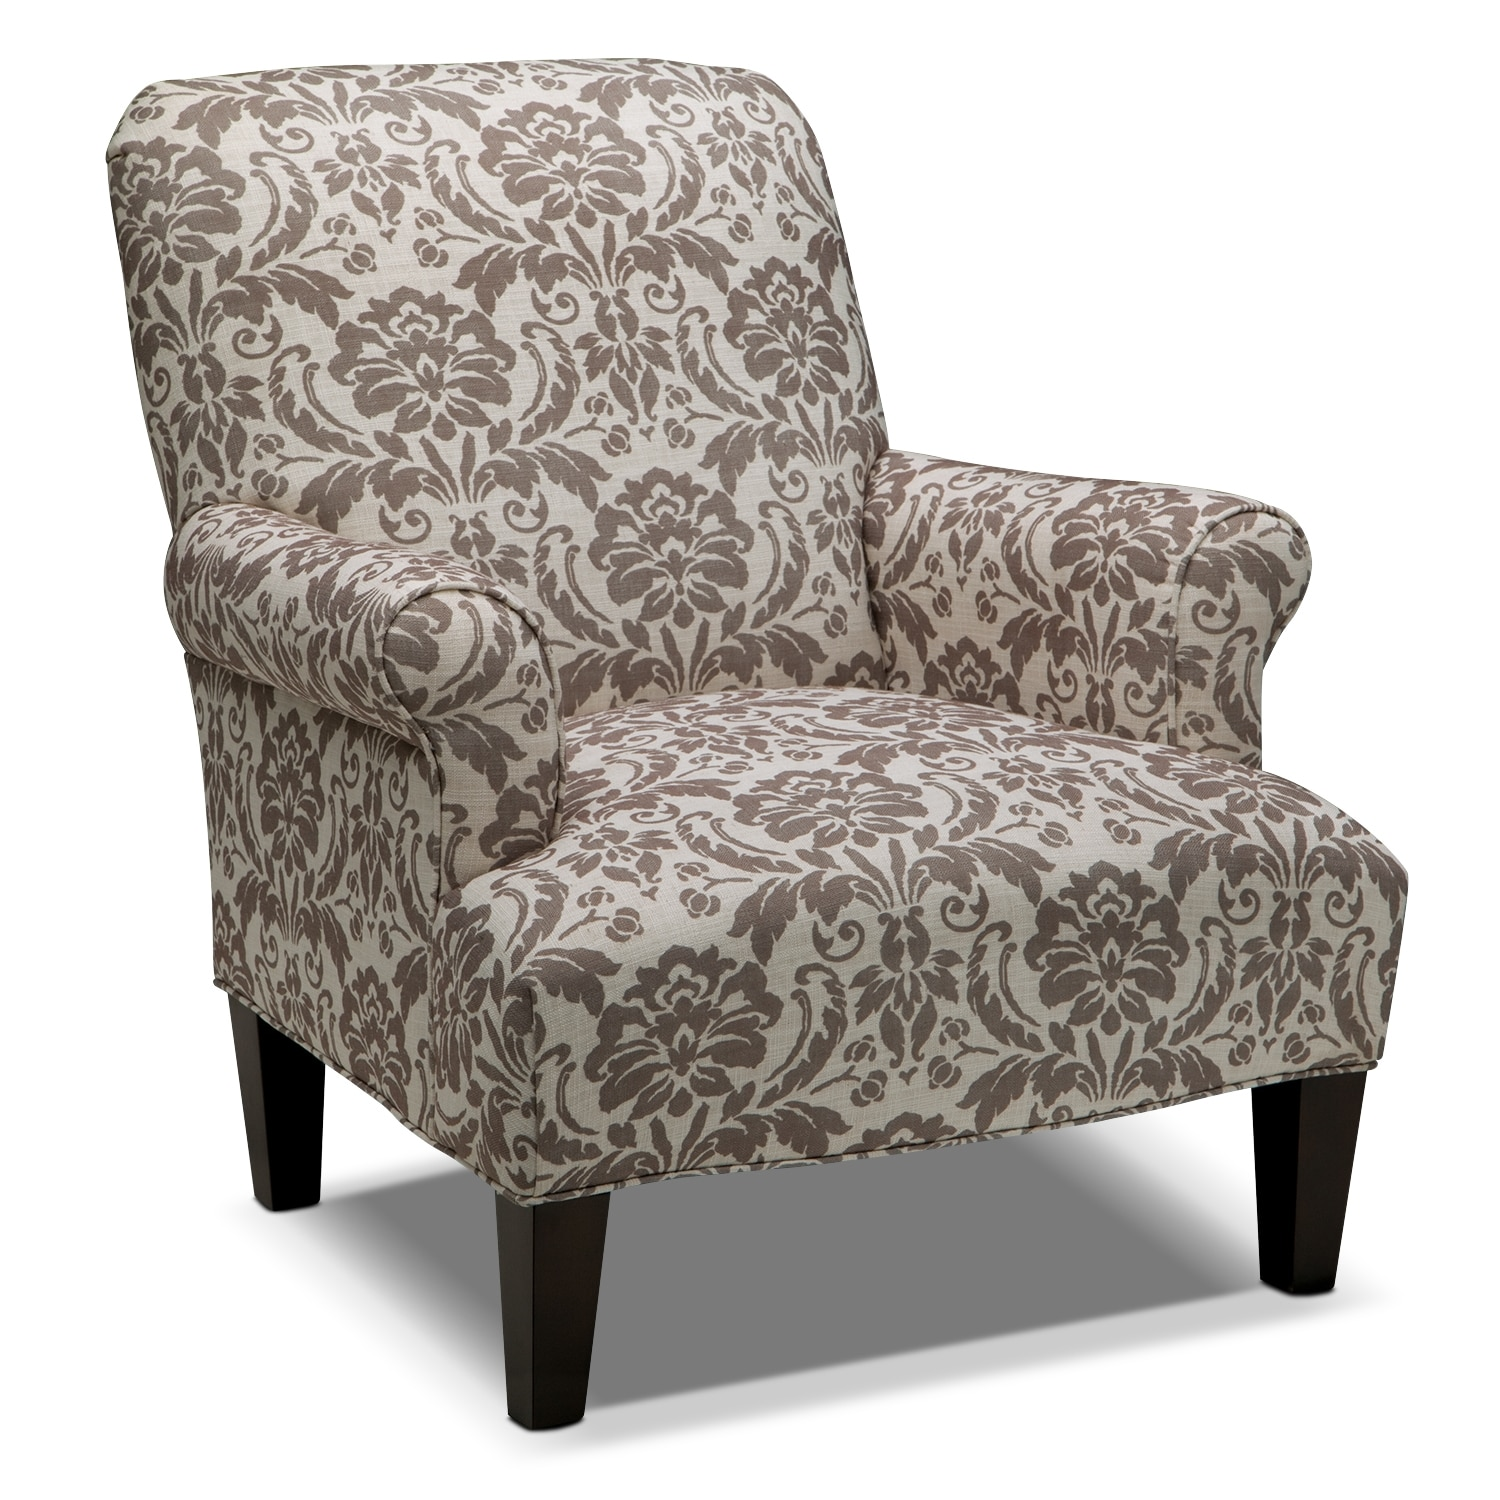 Candice accent chair gray and cream value city furniture for Occasional chairs for living room